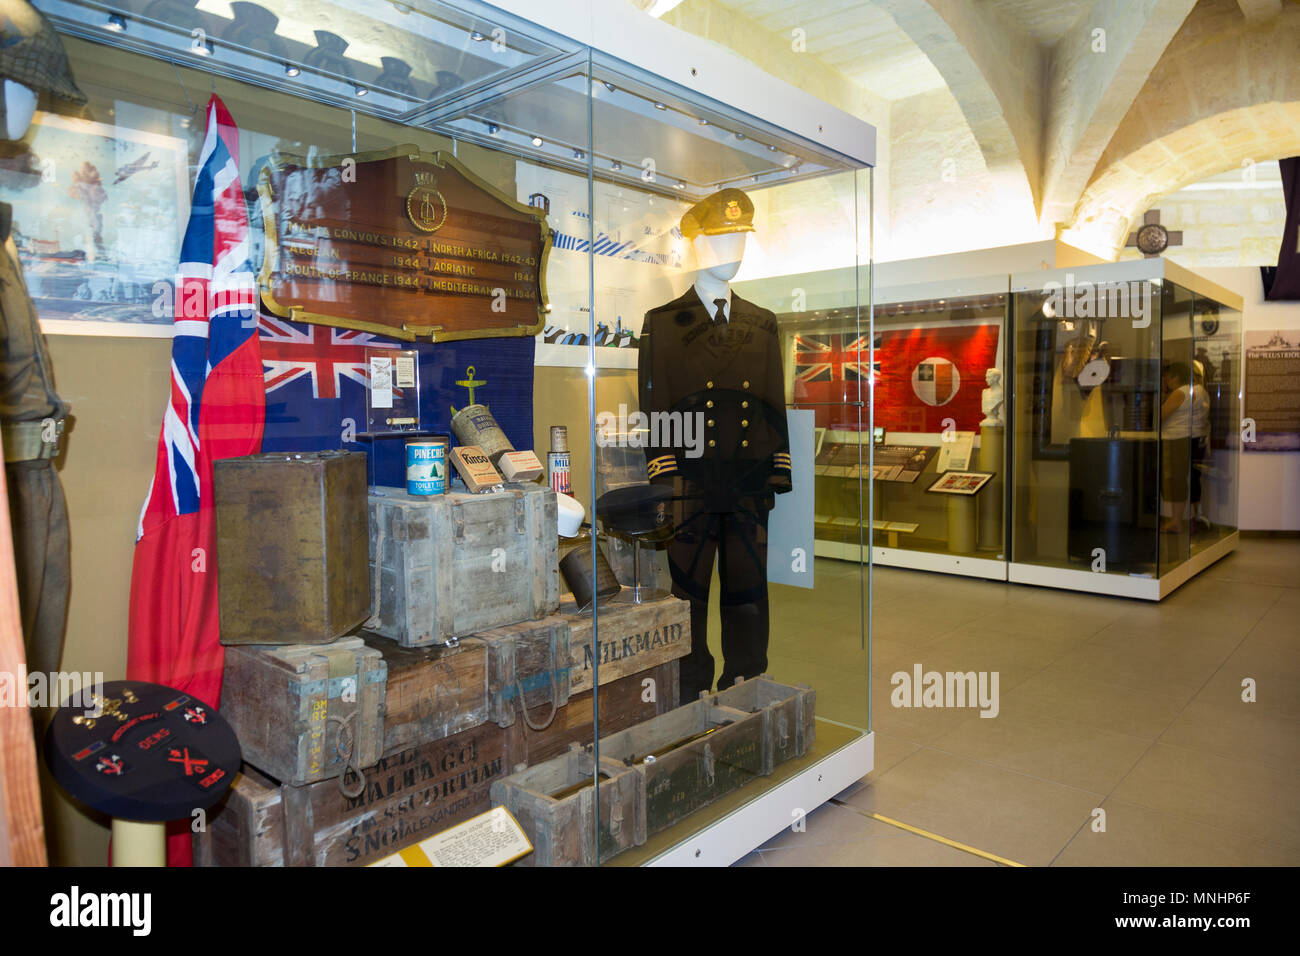 Exhibit / display of exhibits including military uniform inside the exhibition displayed at The Malta At War Museum, Malta. (91) - Stock Image